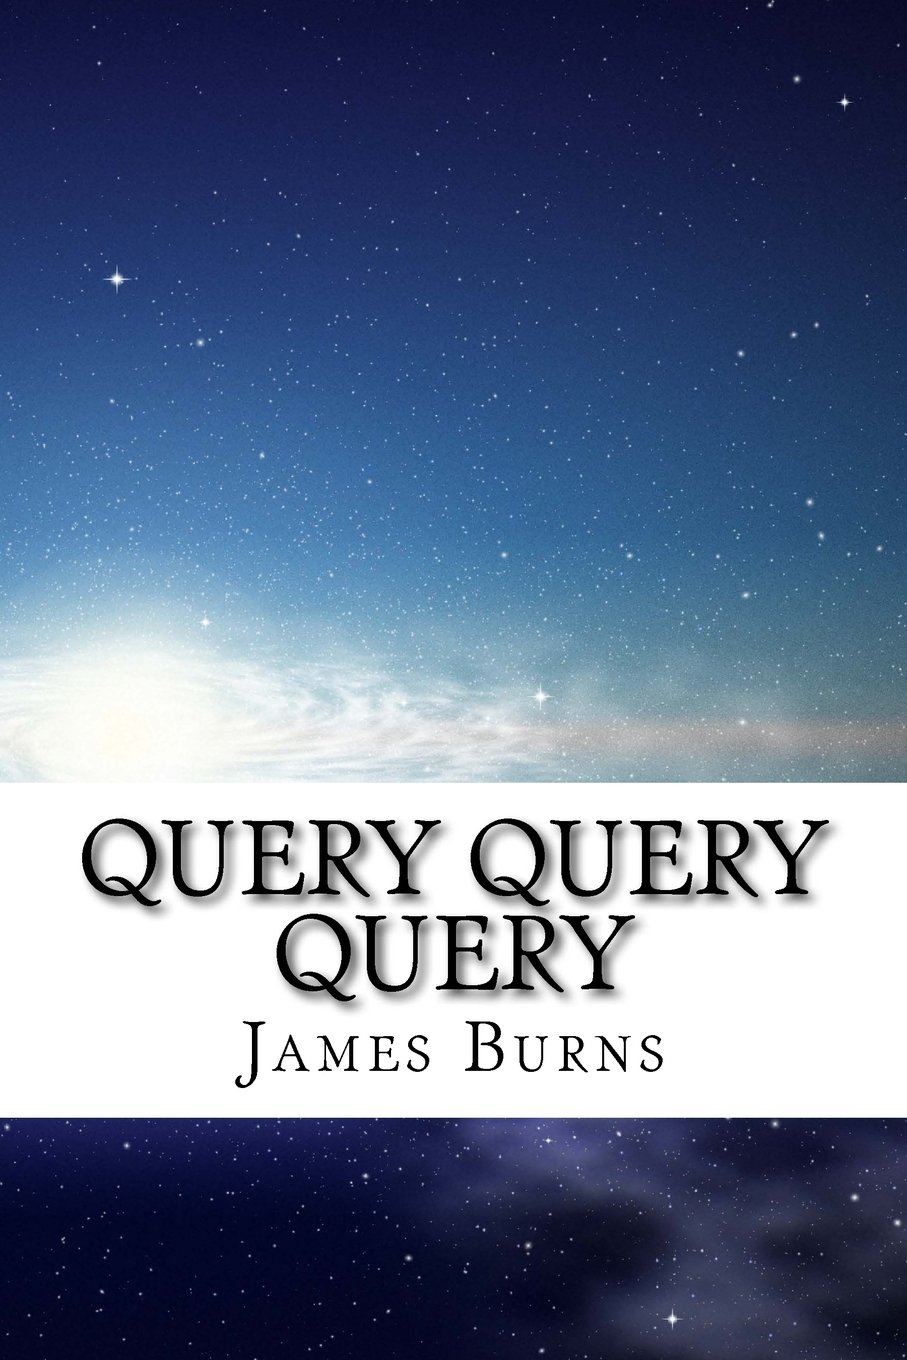 Read Online Query Query Query (The Poetry of James Burns) (Volume 27) PDF